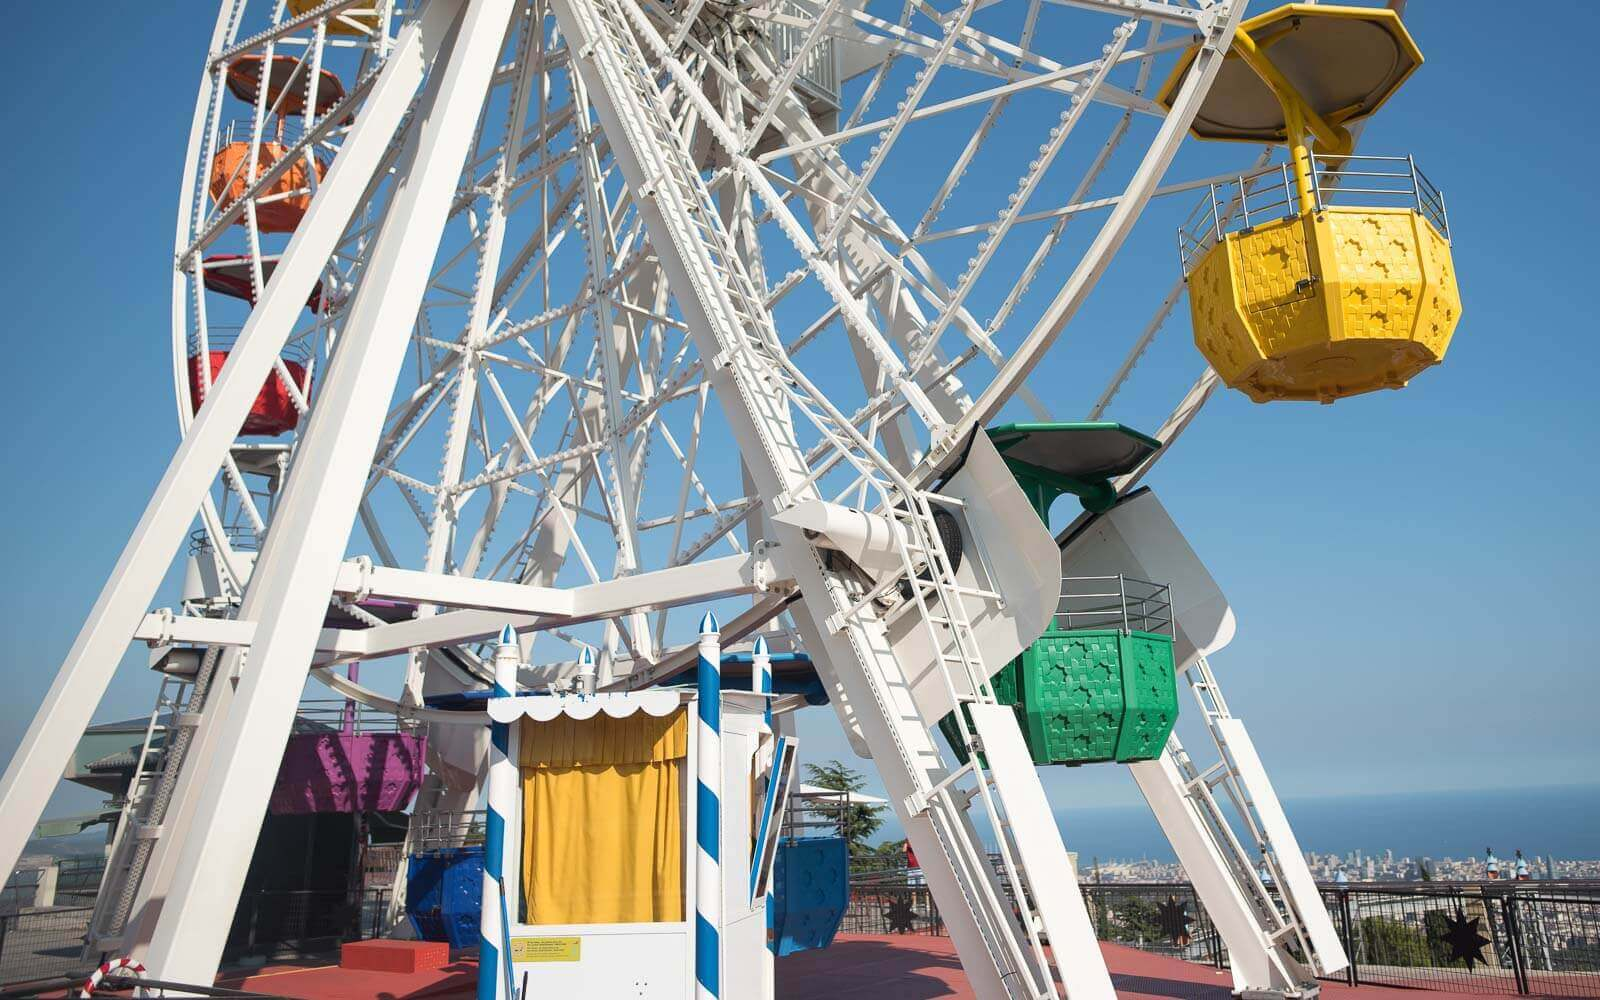 a ferris wheel atop tibidabo amusement park barcelona